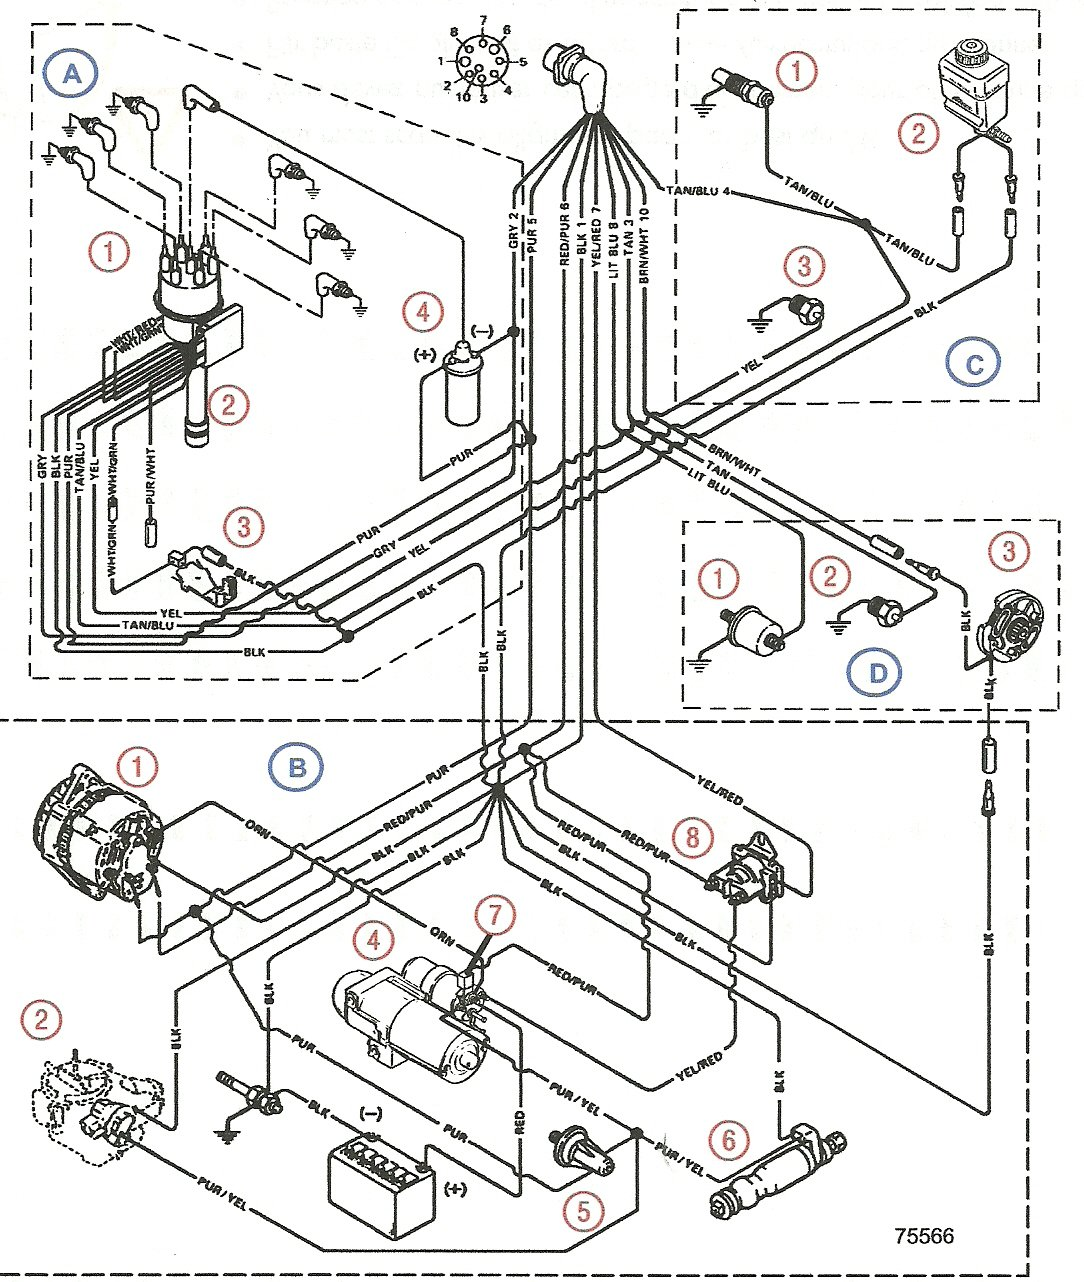 STRUCTURE] DOWNLOAD 3 7 Mercruiser Starter Wiring Diagram FULL Version HD  Quality Wiring Diagram - OKCWEBDESIGNER.KINGGO.FRokcwebdesigner kinggo fr